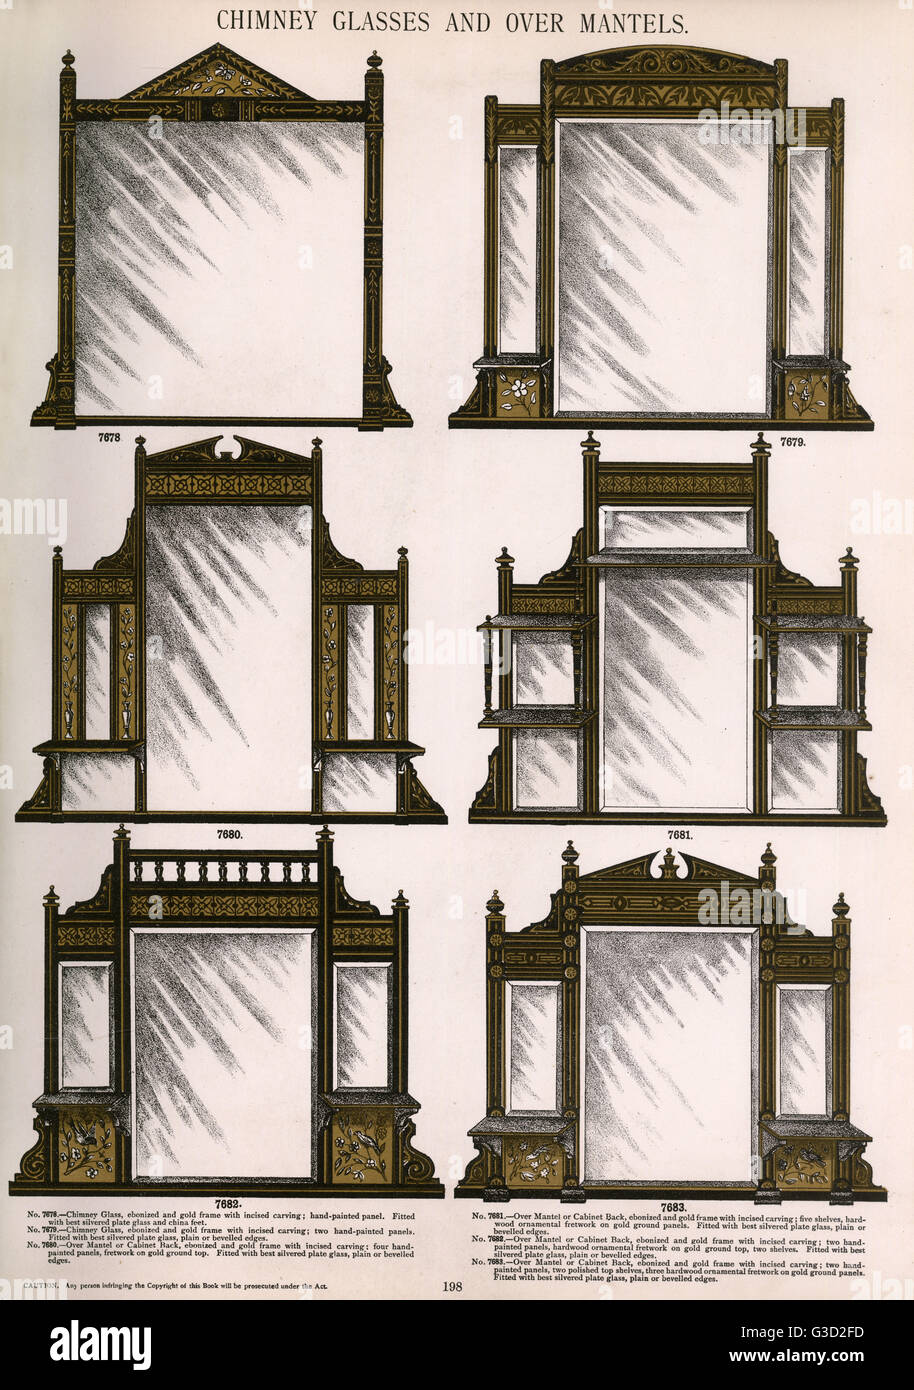 Chimney glasses and over mantels, Plate 198, showing a range of ...